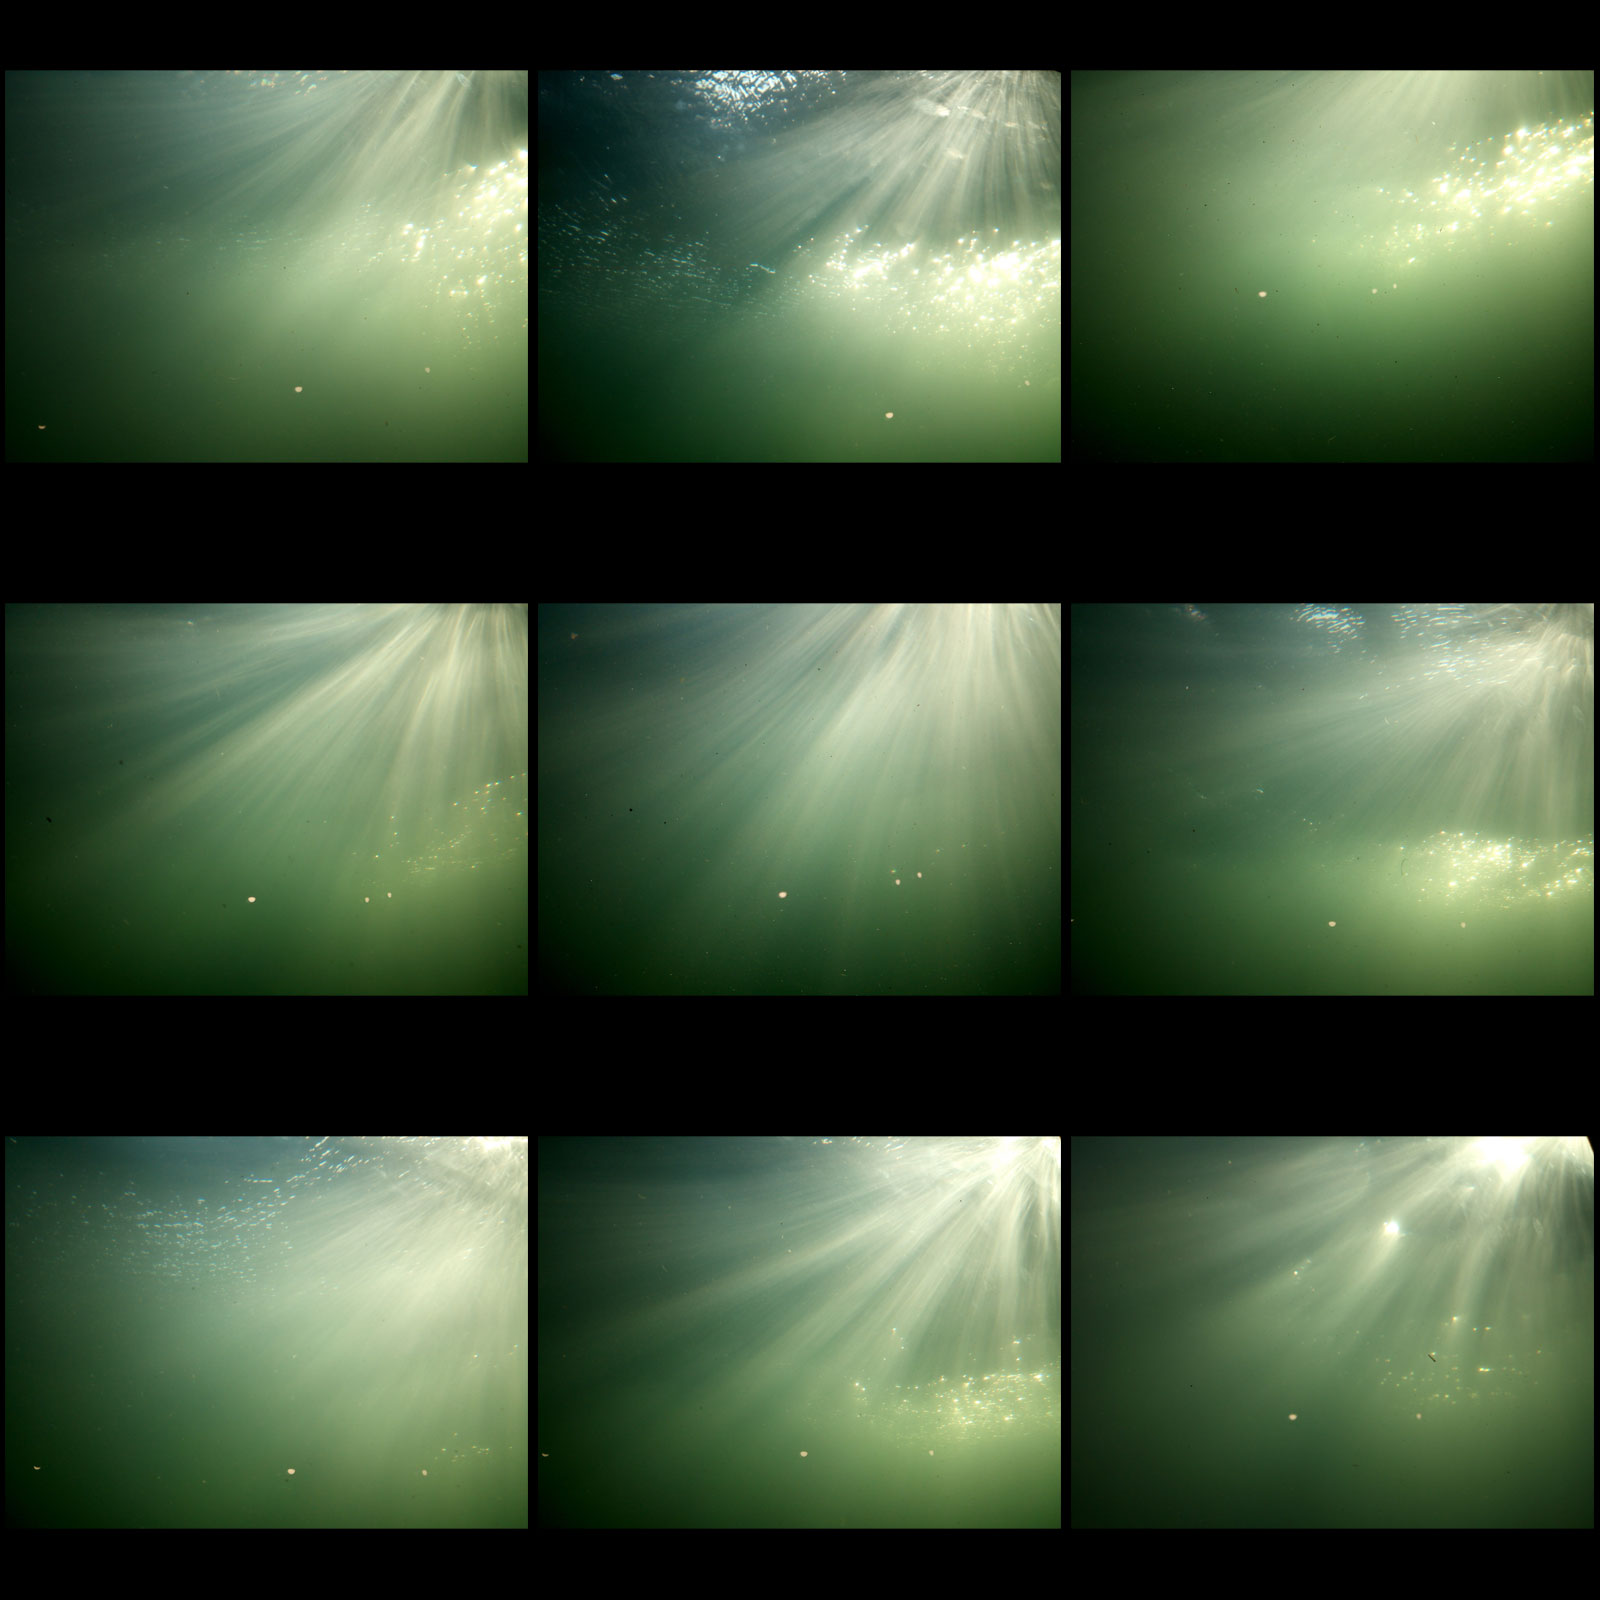 Underwater Lights Backgrounds by biala